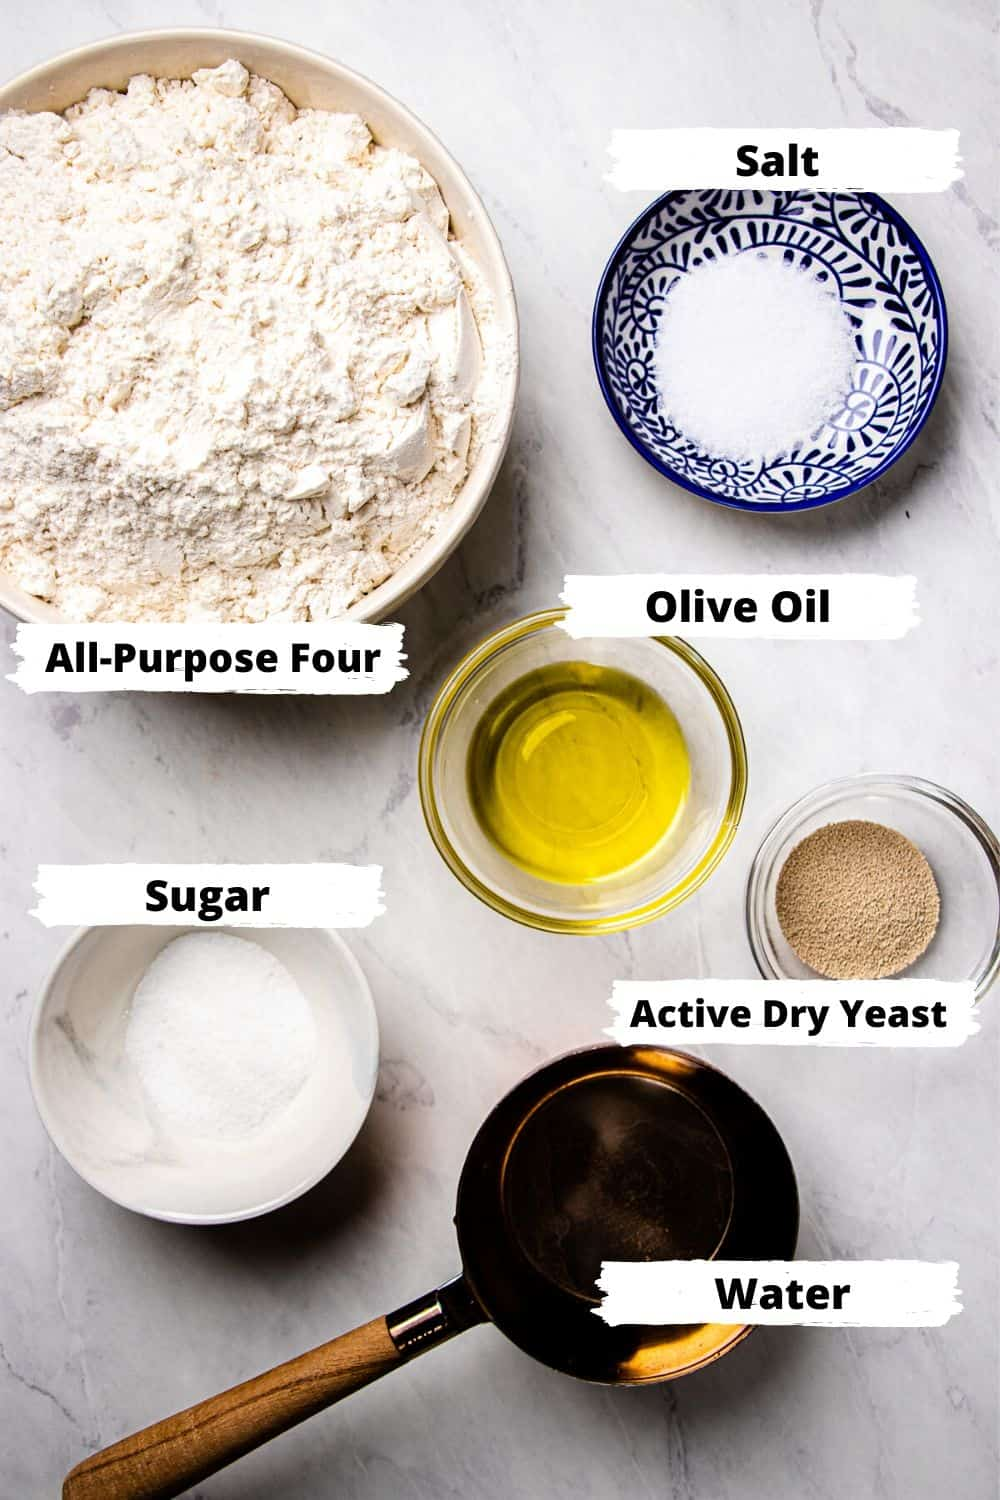 Ingredients for Pizza Dough.